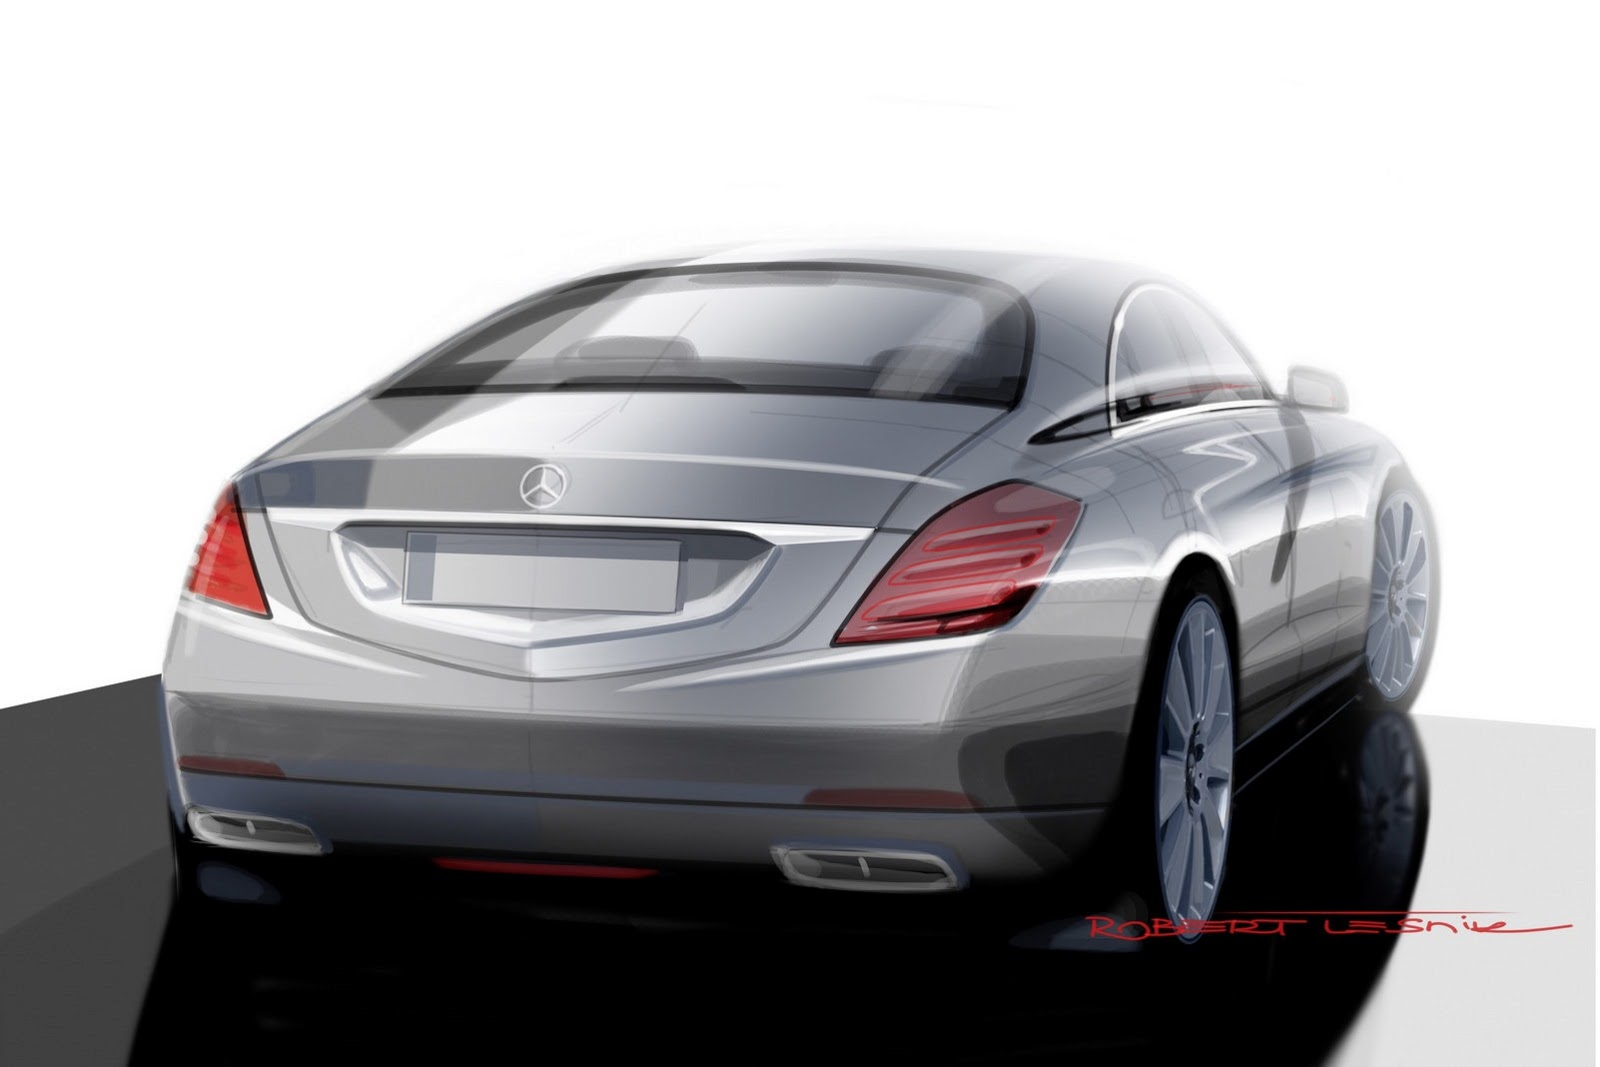 2014 Mercedes Benz S-Class Sketch - SMADE MEDIA (2)